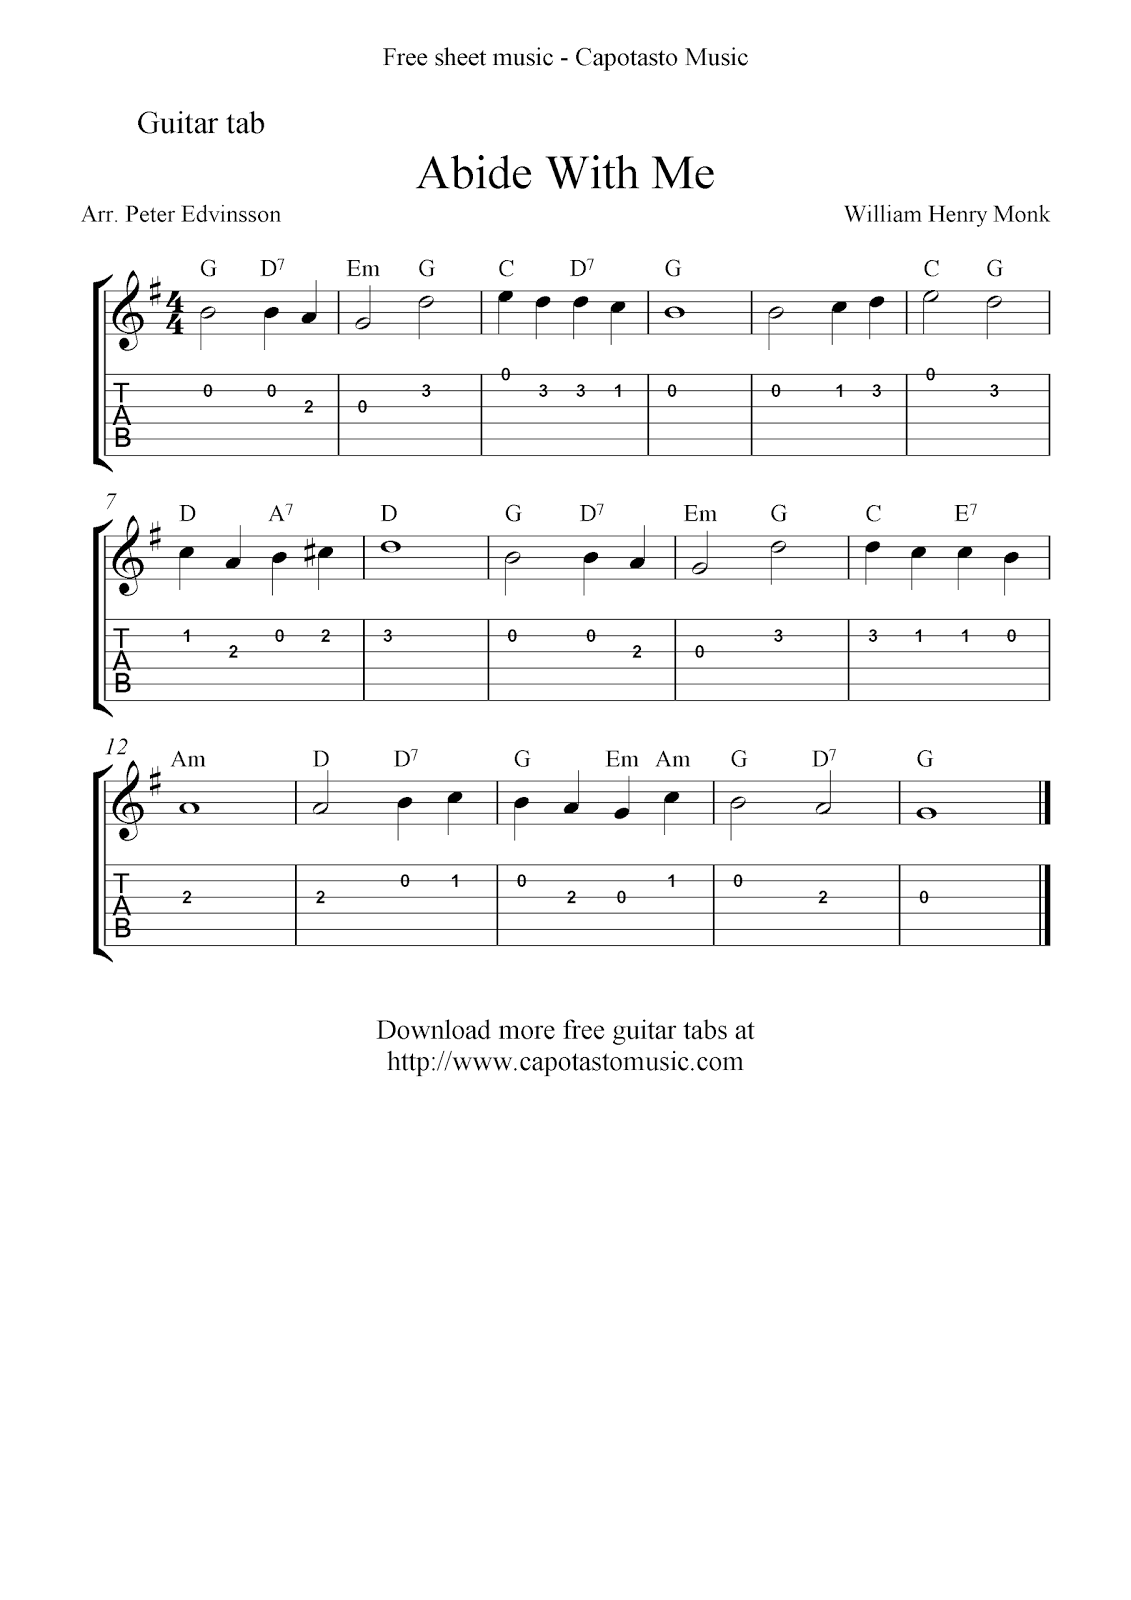 Free easy guitar tab sheet music notes, the Christian hymn Abide With Me